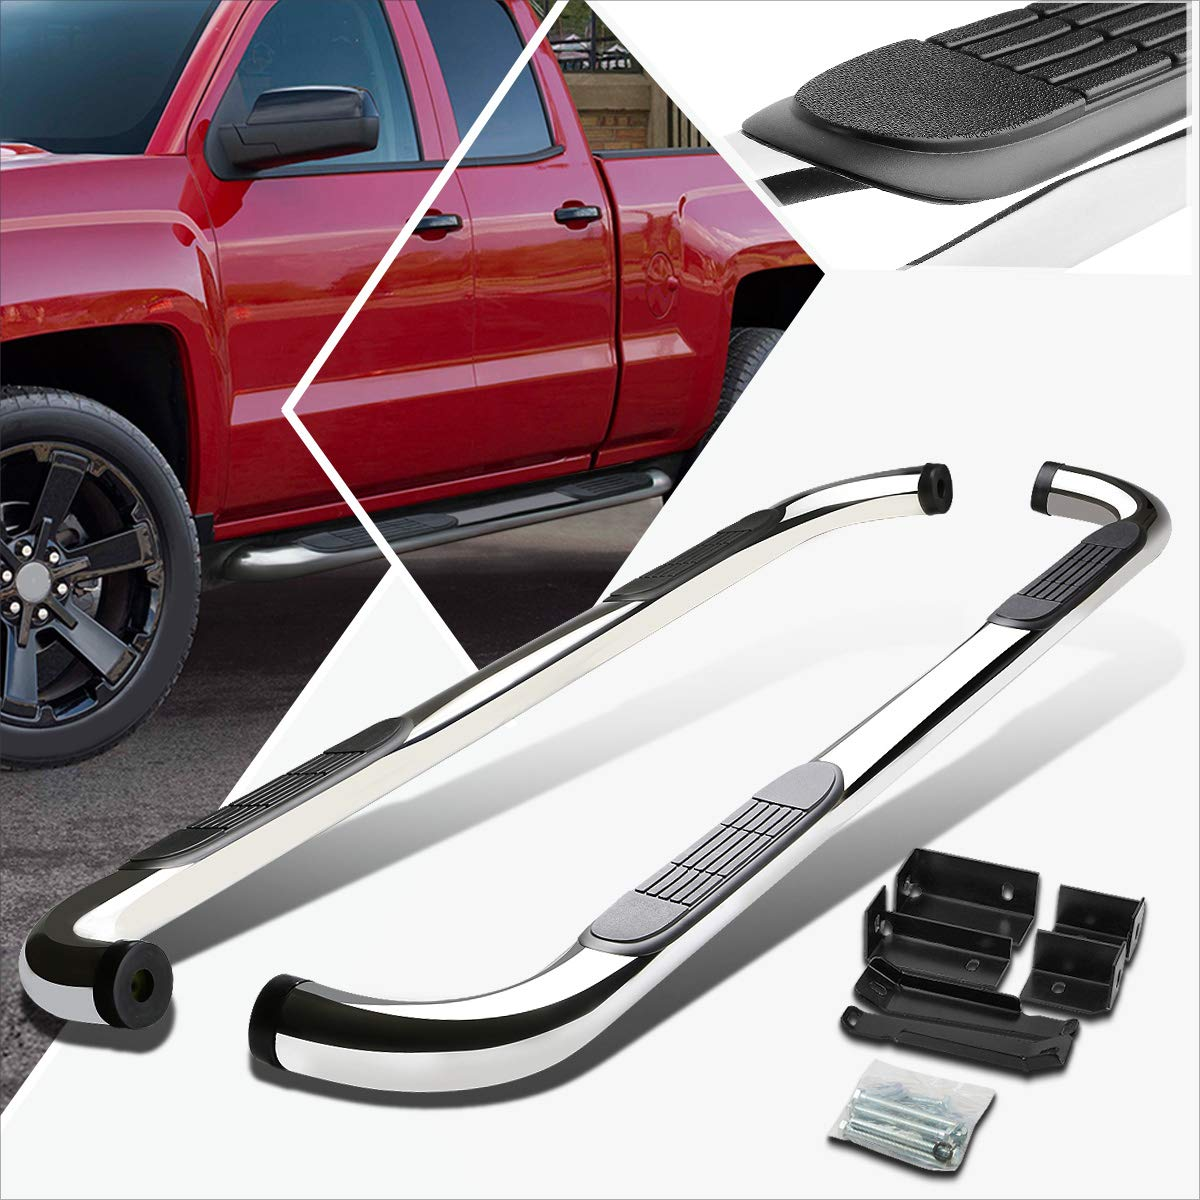 3 Inches Chrome Running Board Side Step Nerf Bar Compatible with Chevy Silverado//GMC Sierra Ext Cab 99-16